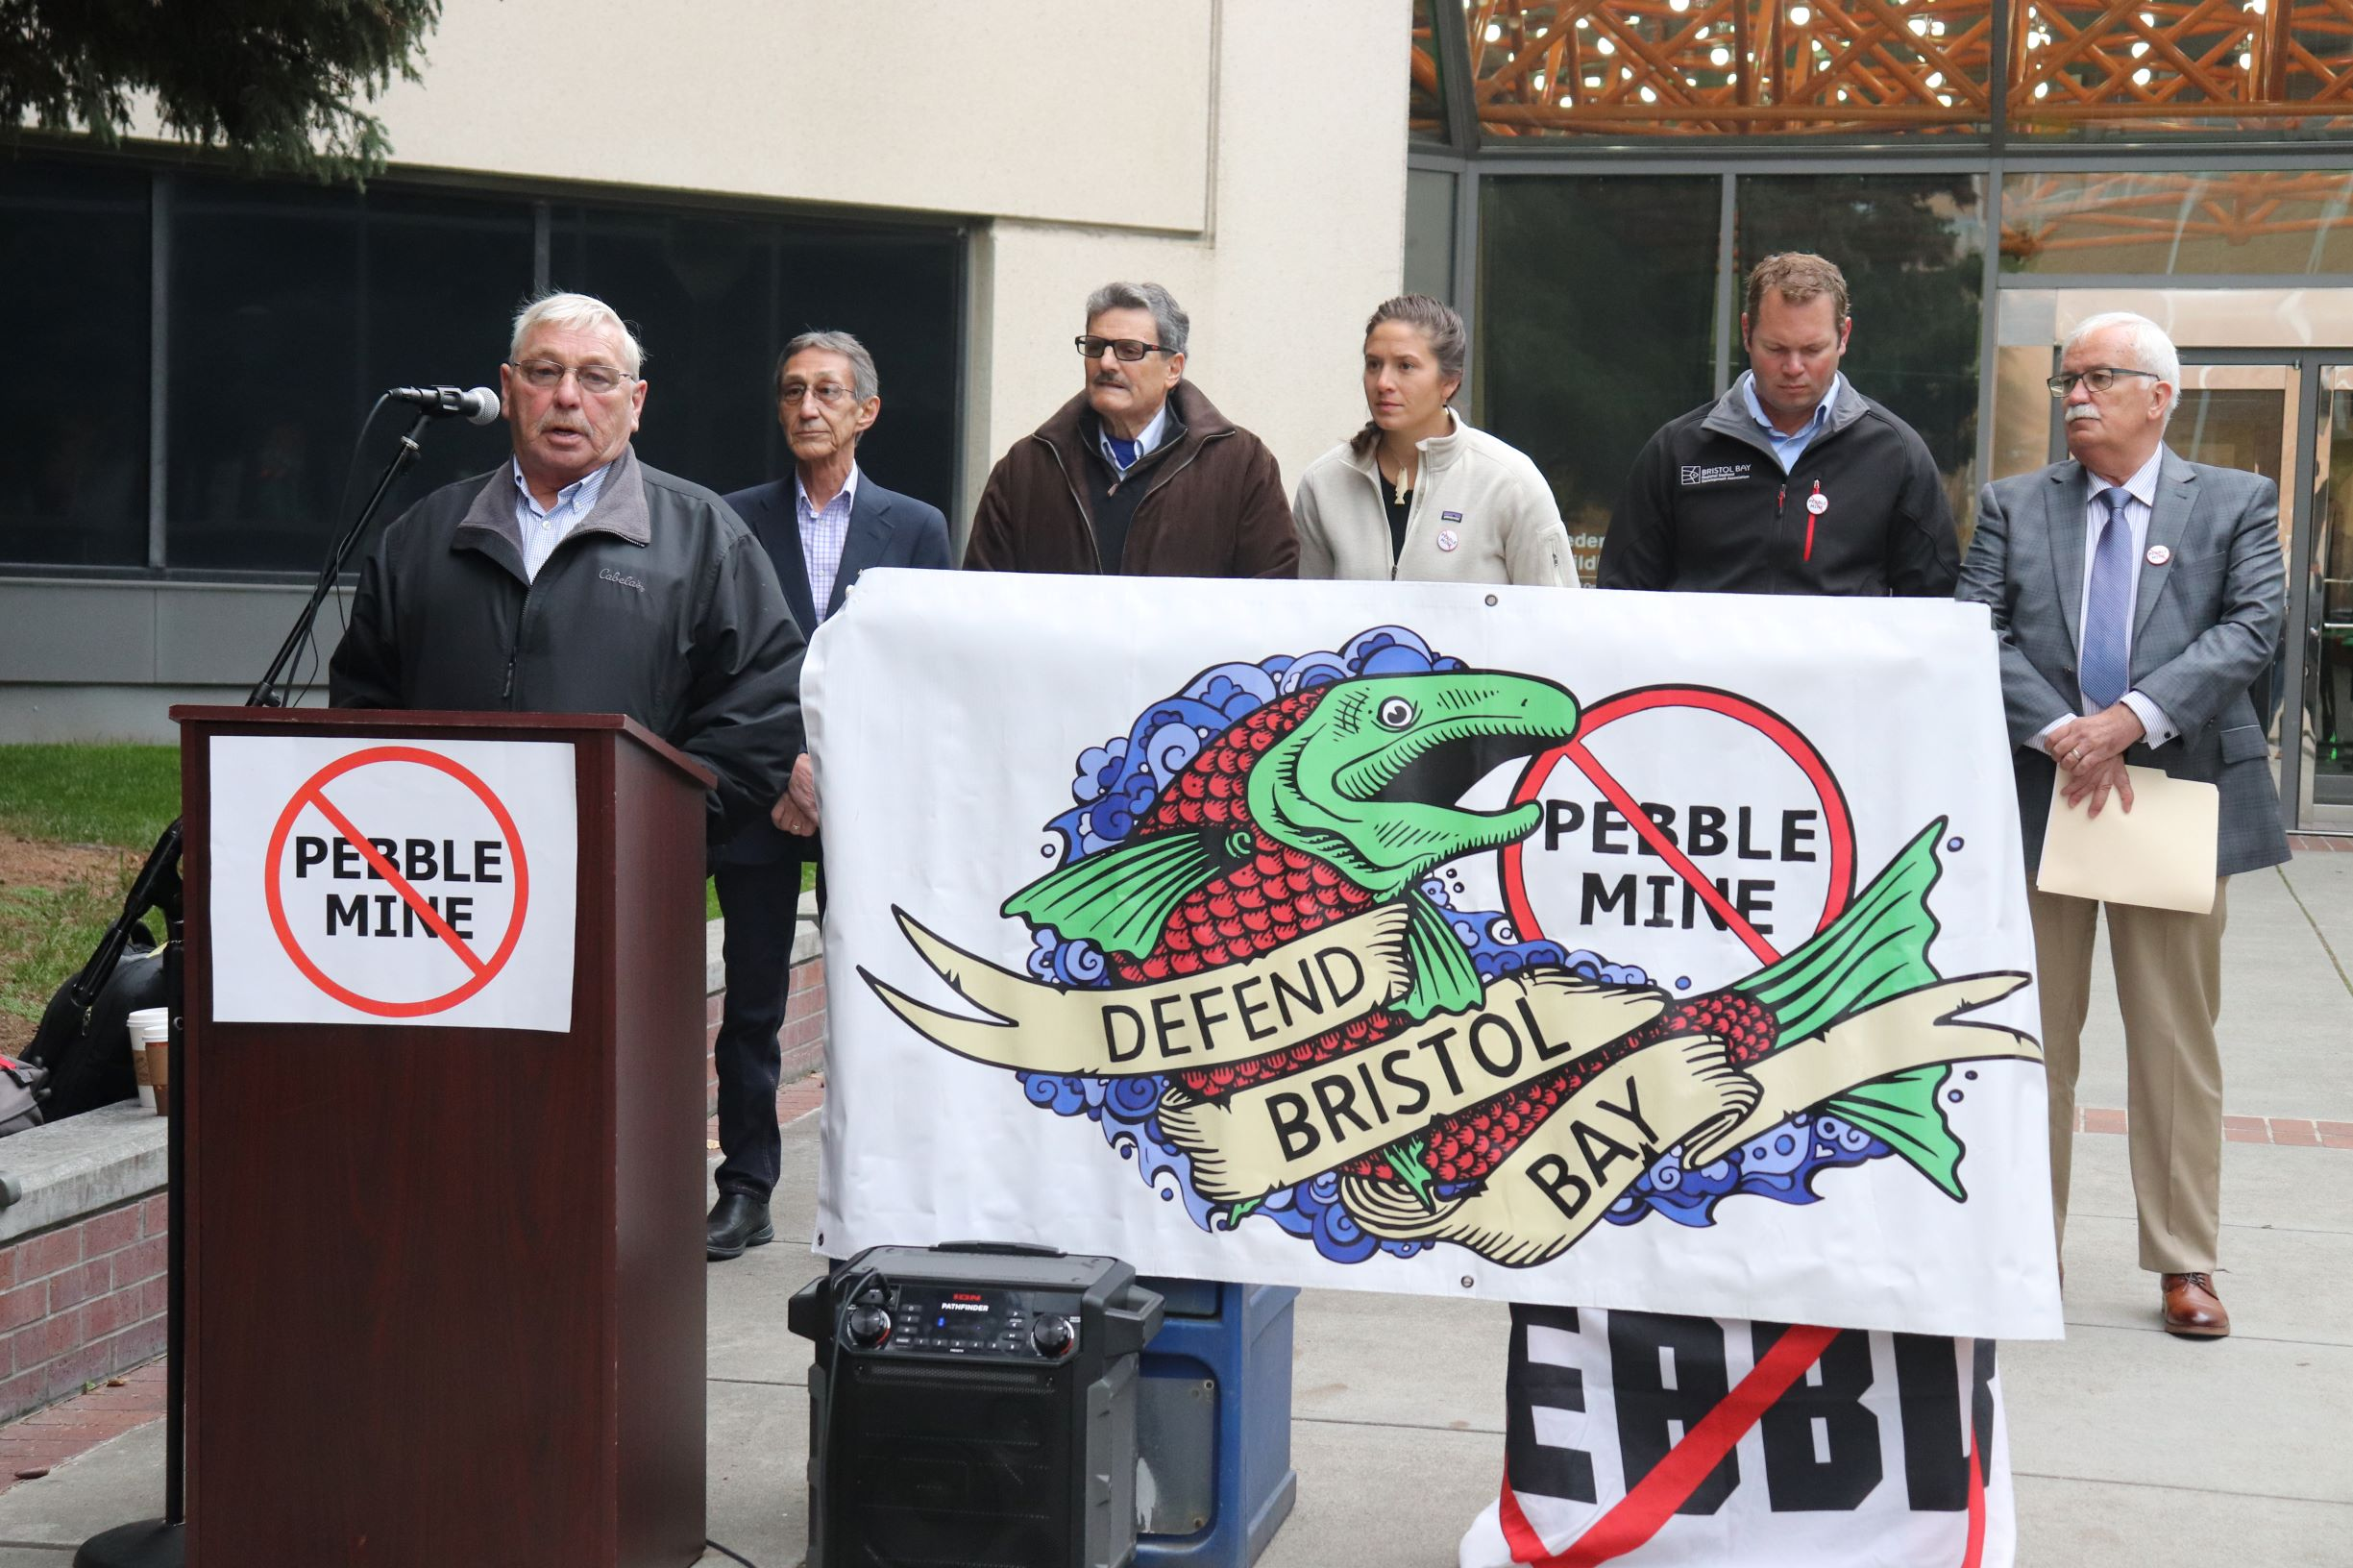 Five Groups Sue EPA on Pebble Mine Action, then Trout Unlimited Announces Lawsuit